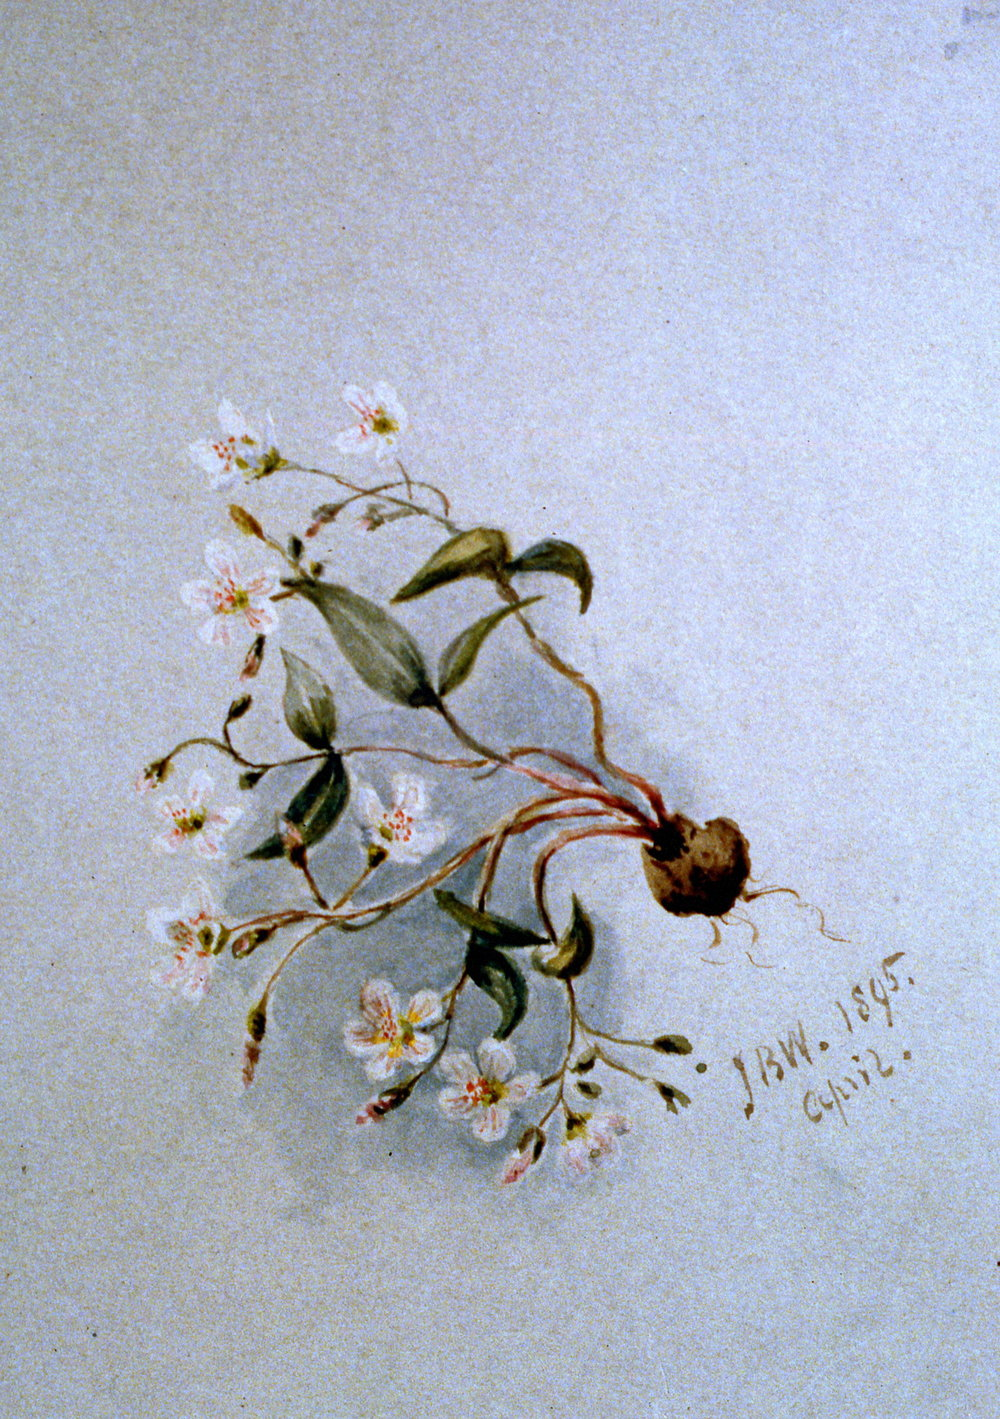 White Daisy(?), Julia Bullock-Webster